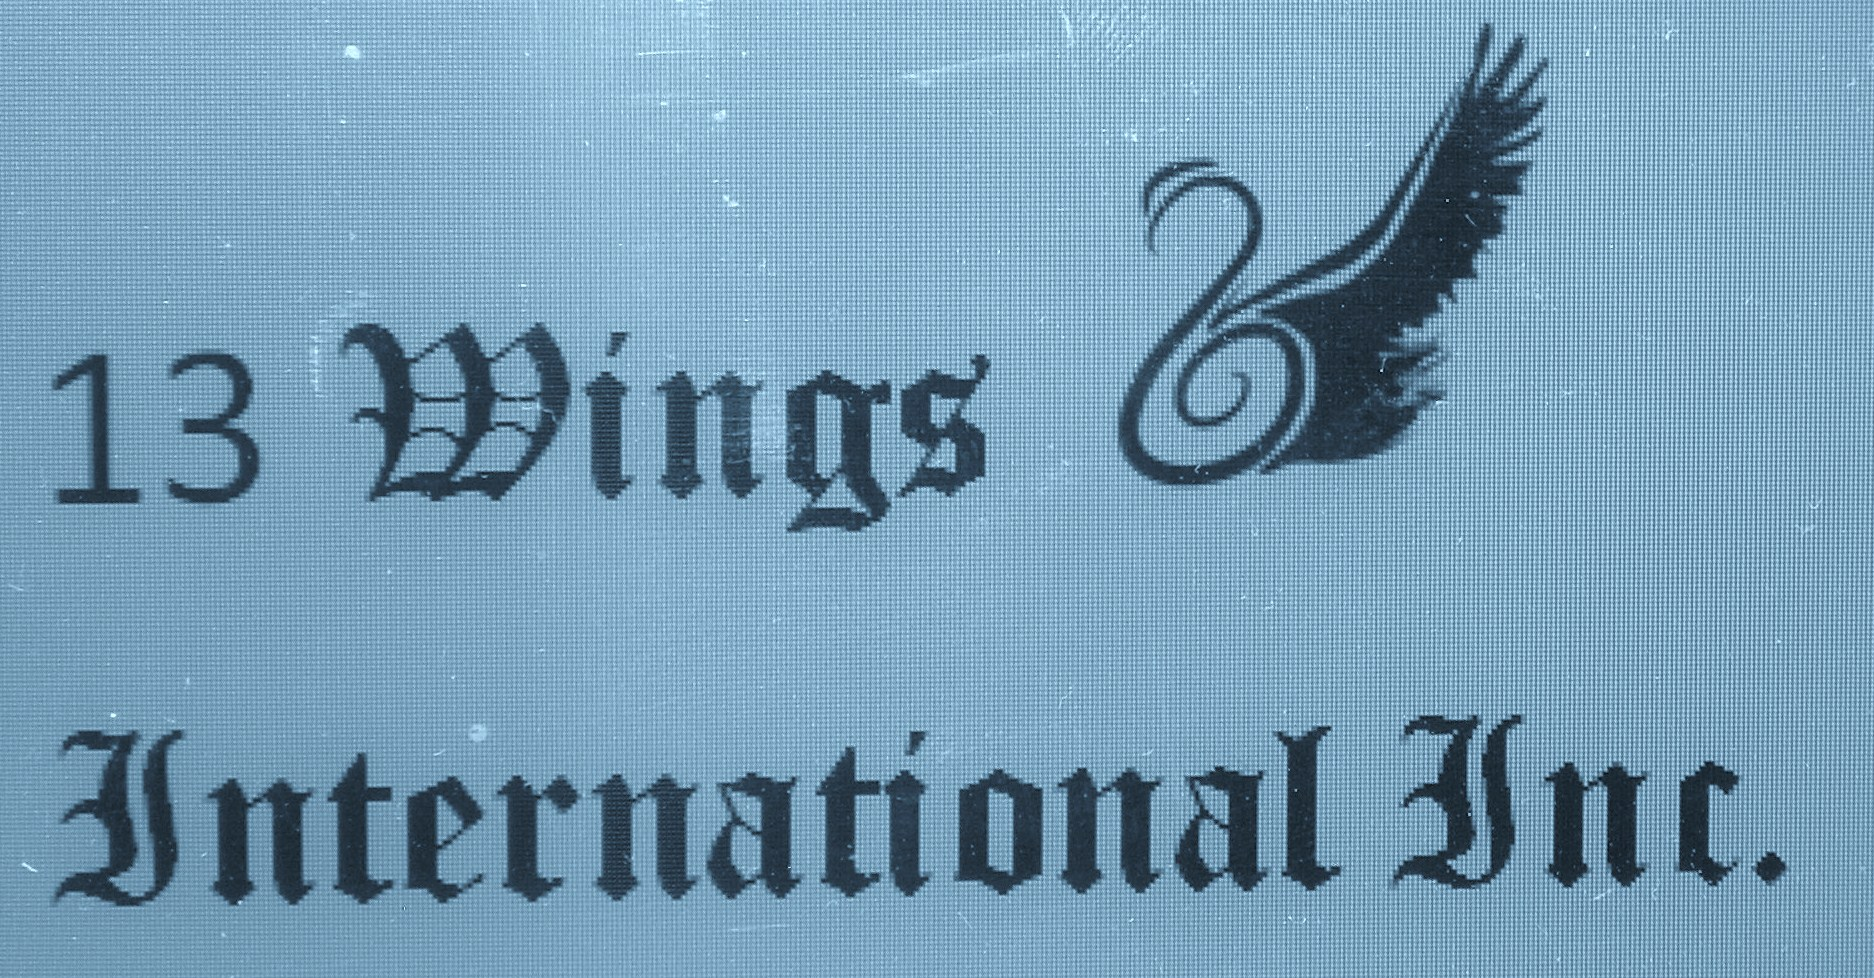 13 Wings International